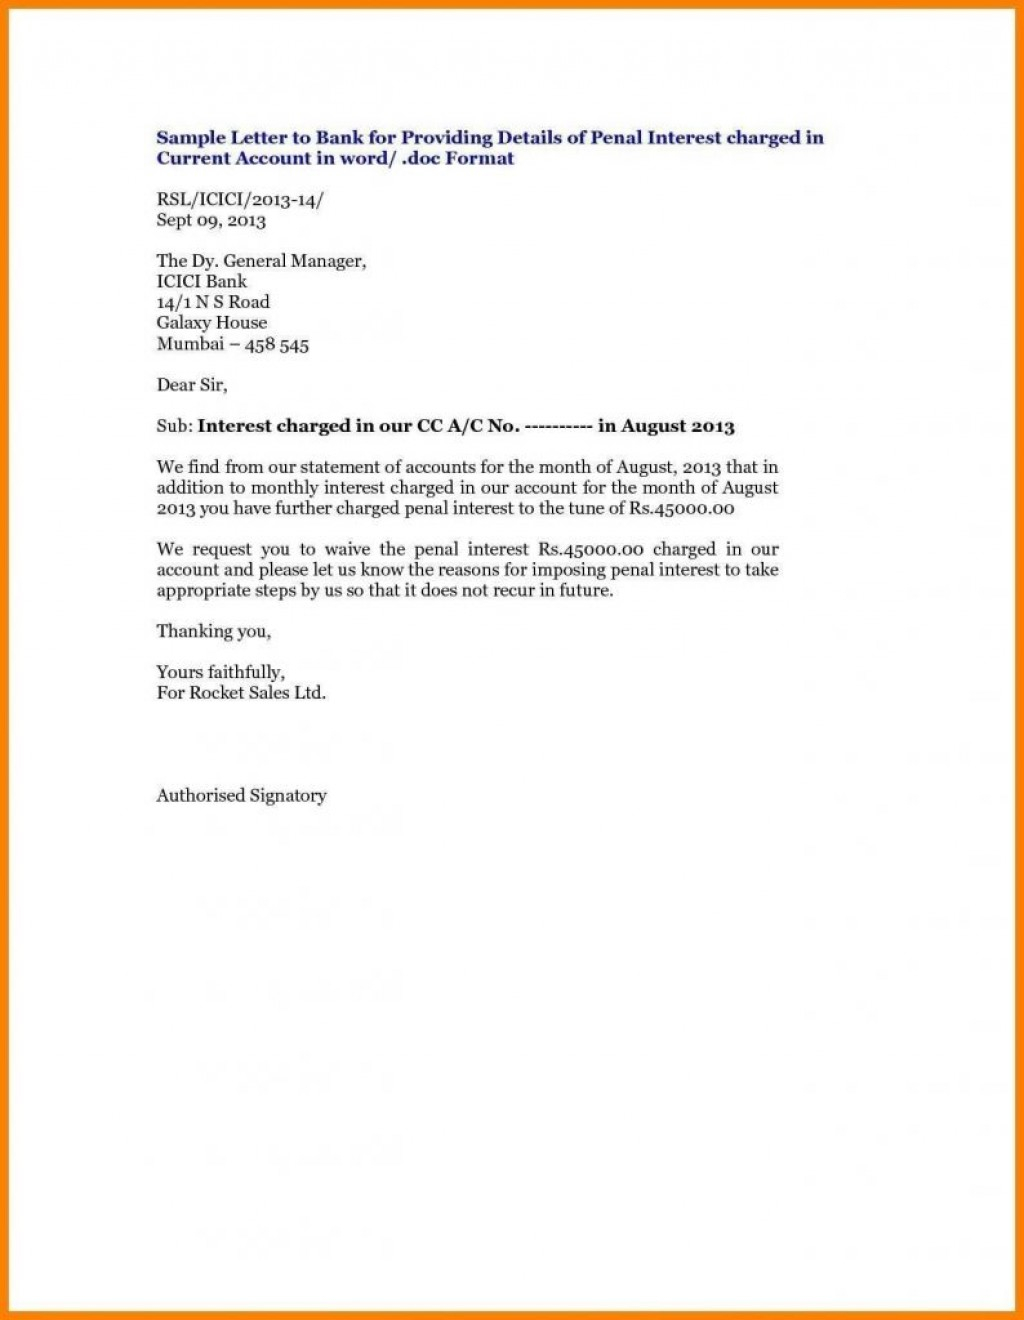 Personal Loan Agreement Letter 011 Bank Letter Of Intent Sample Loan New Personal Statement